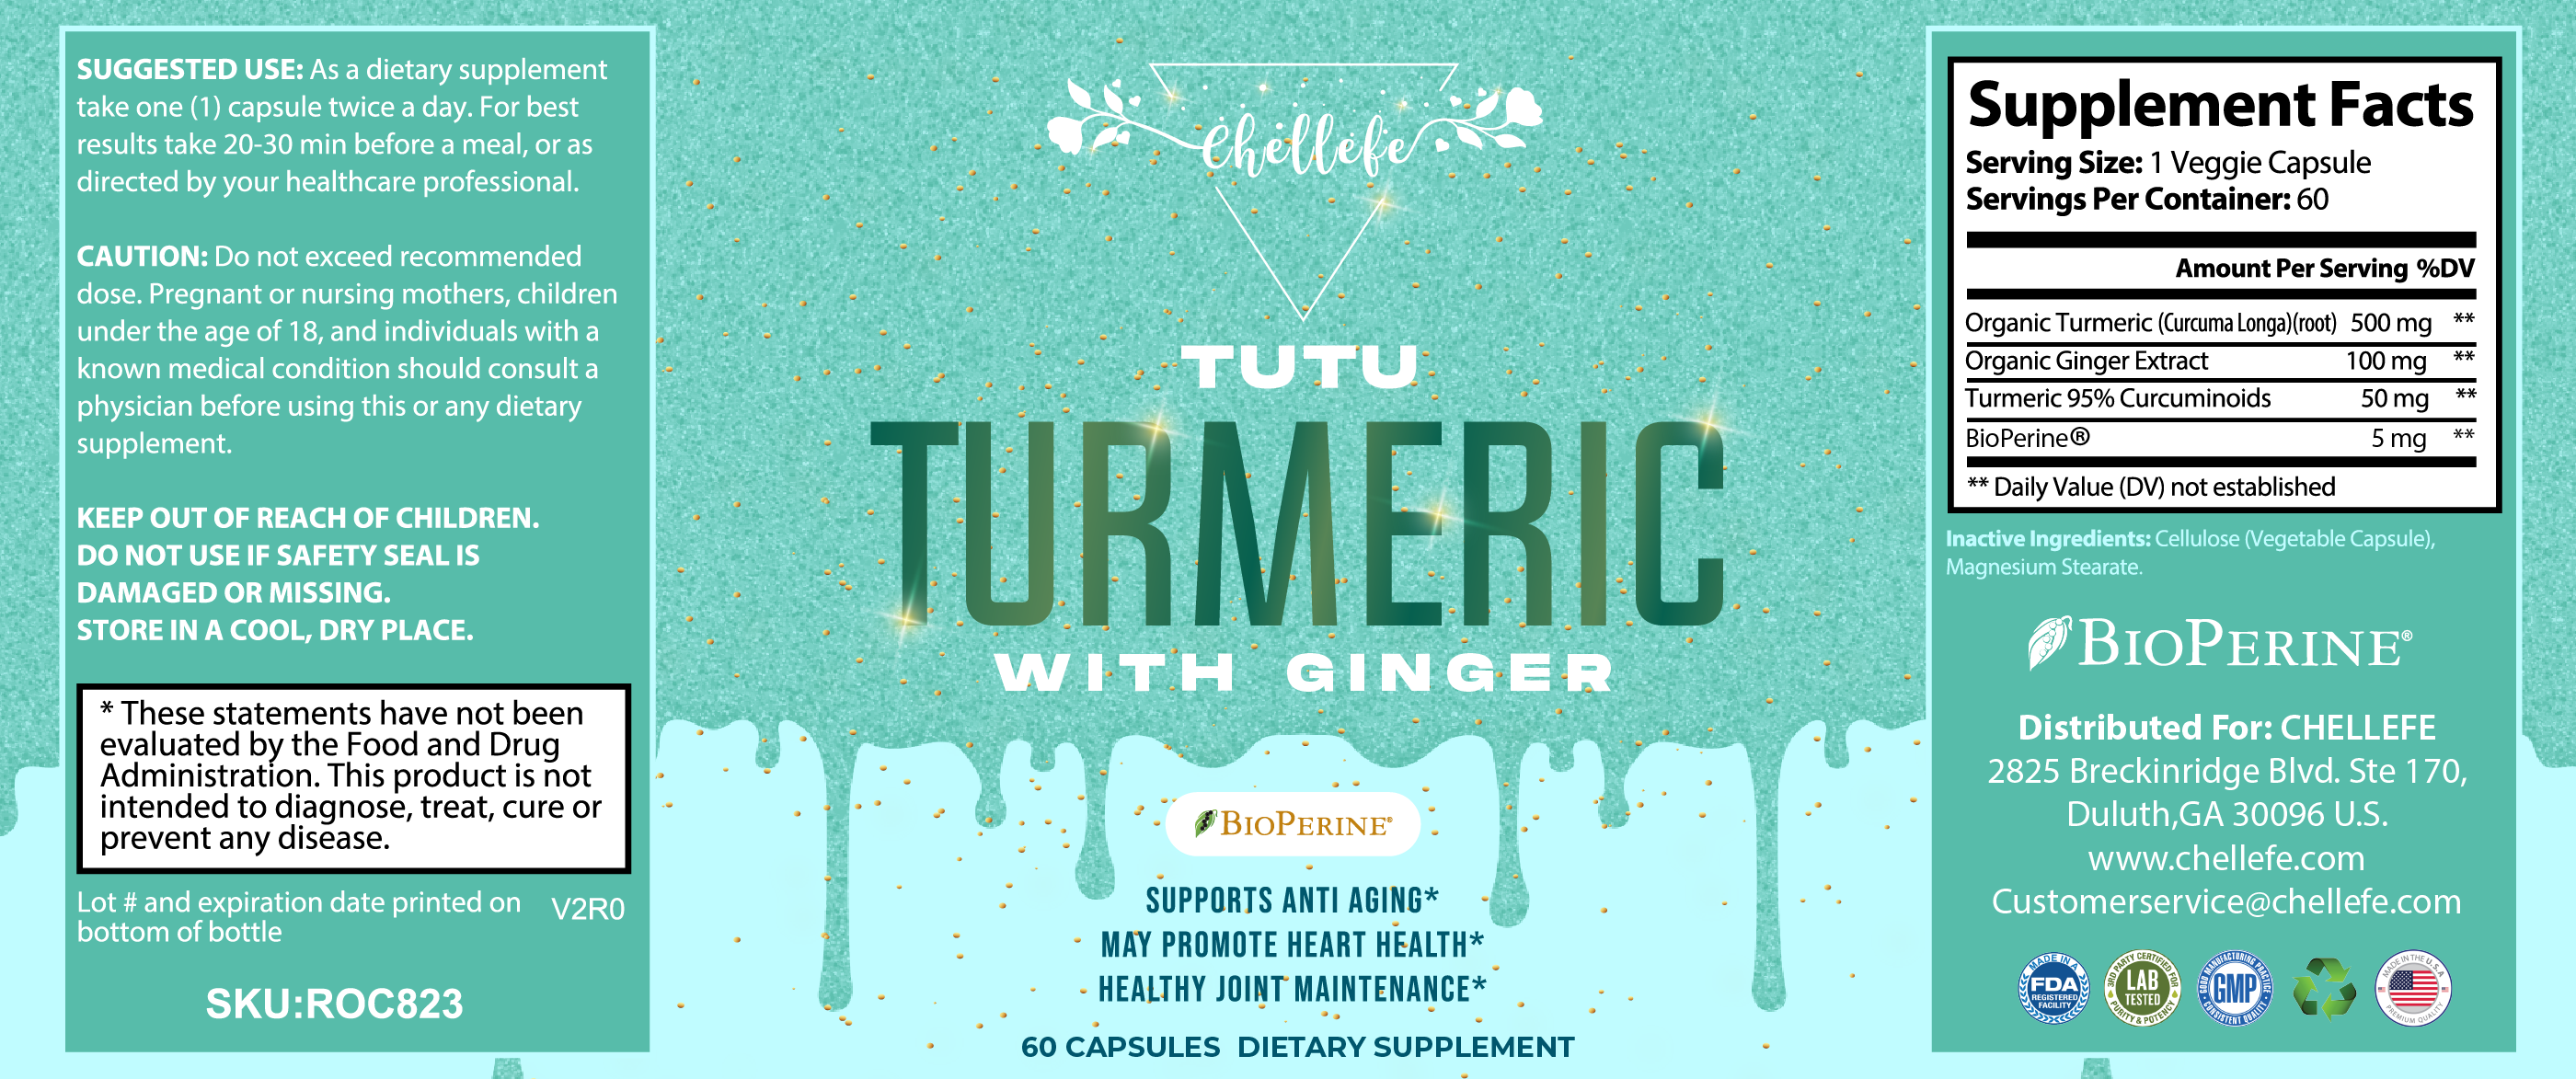 Chellefe Tutu Turmeric With Ginger Anti Aging Dietary Supplements